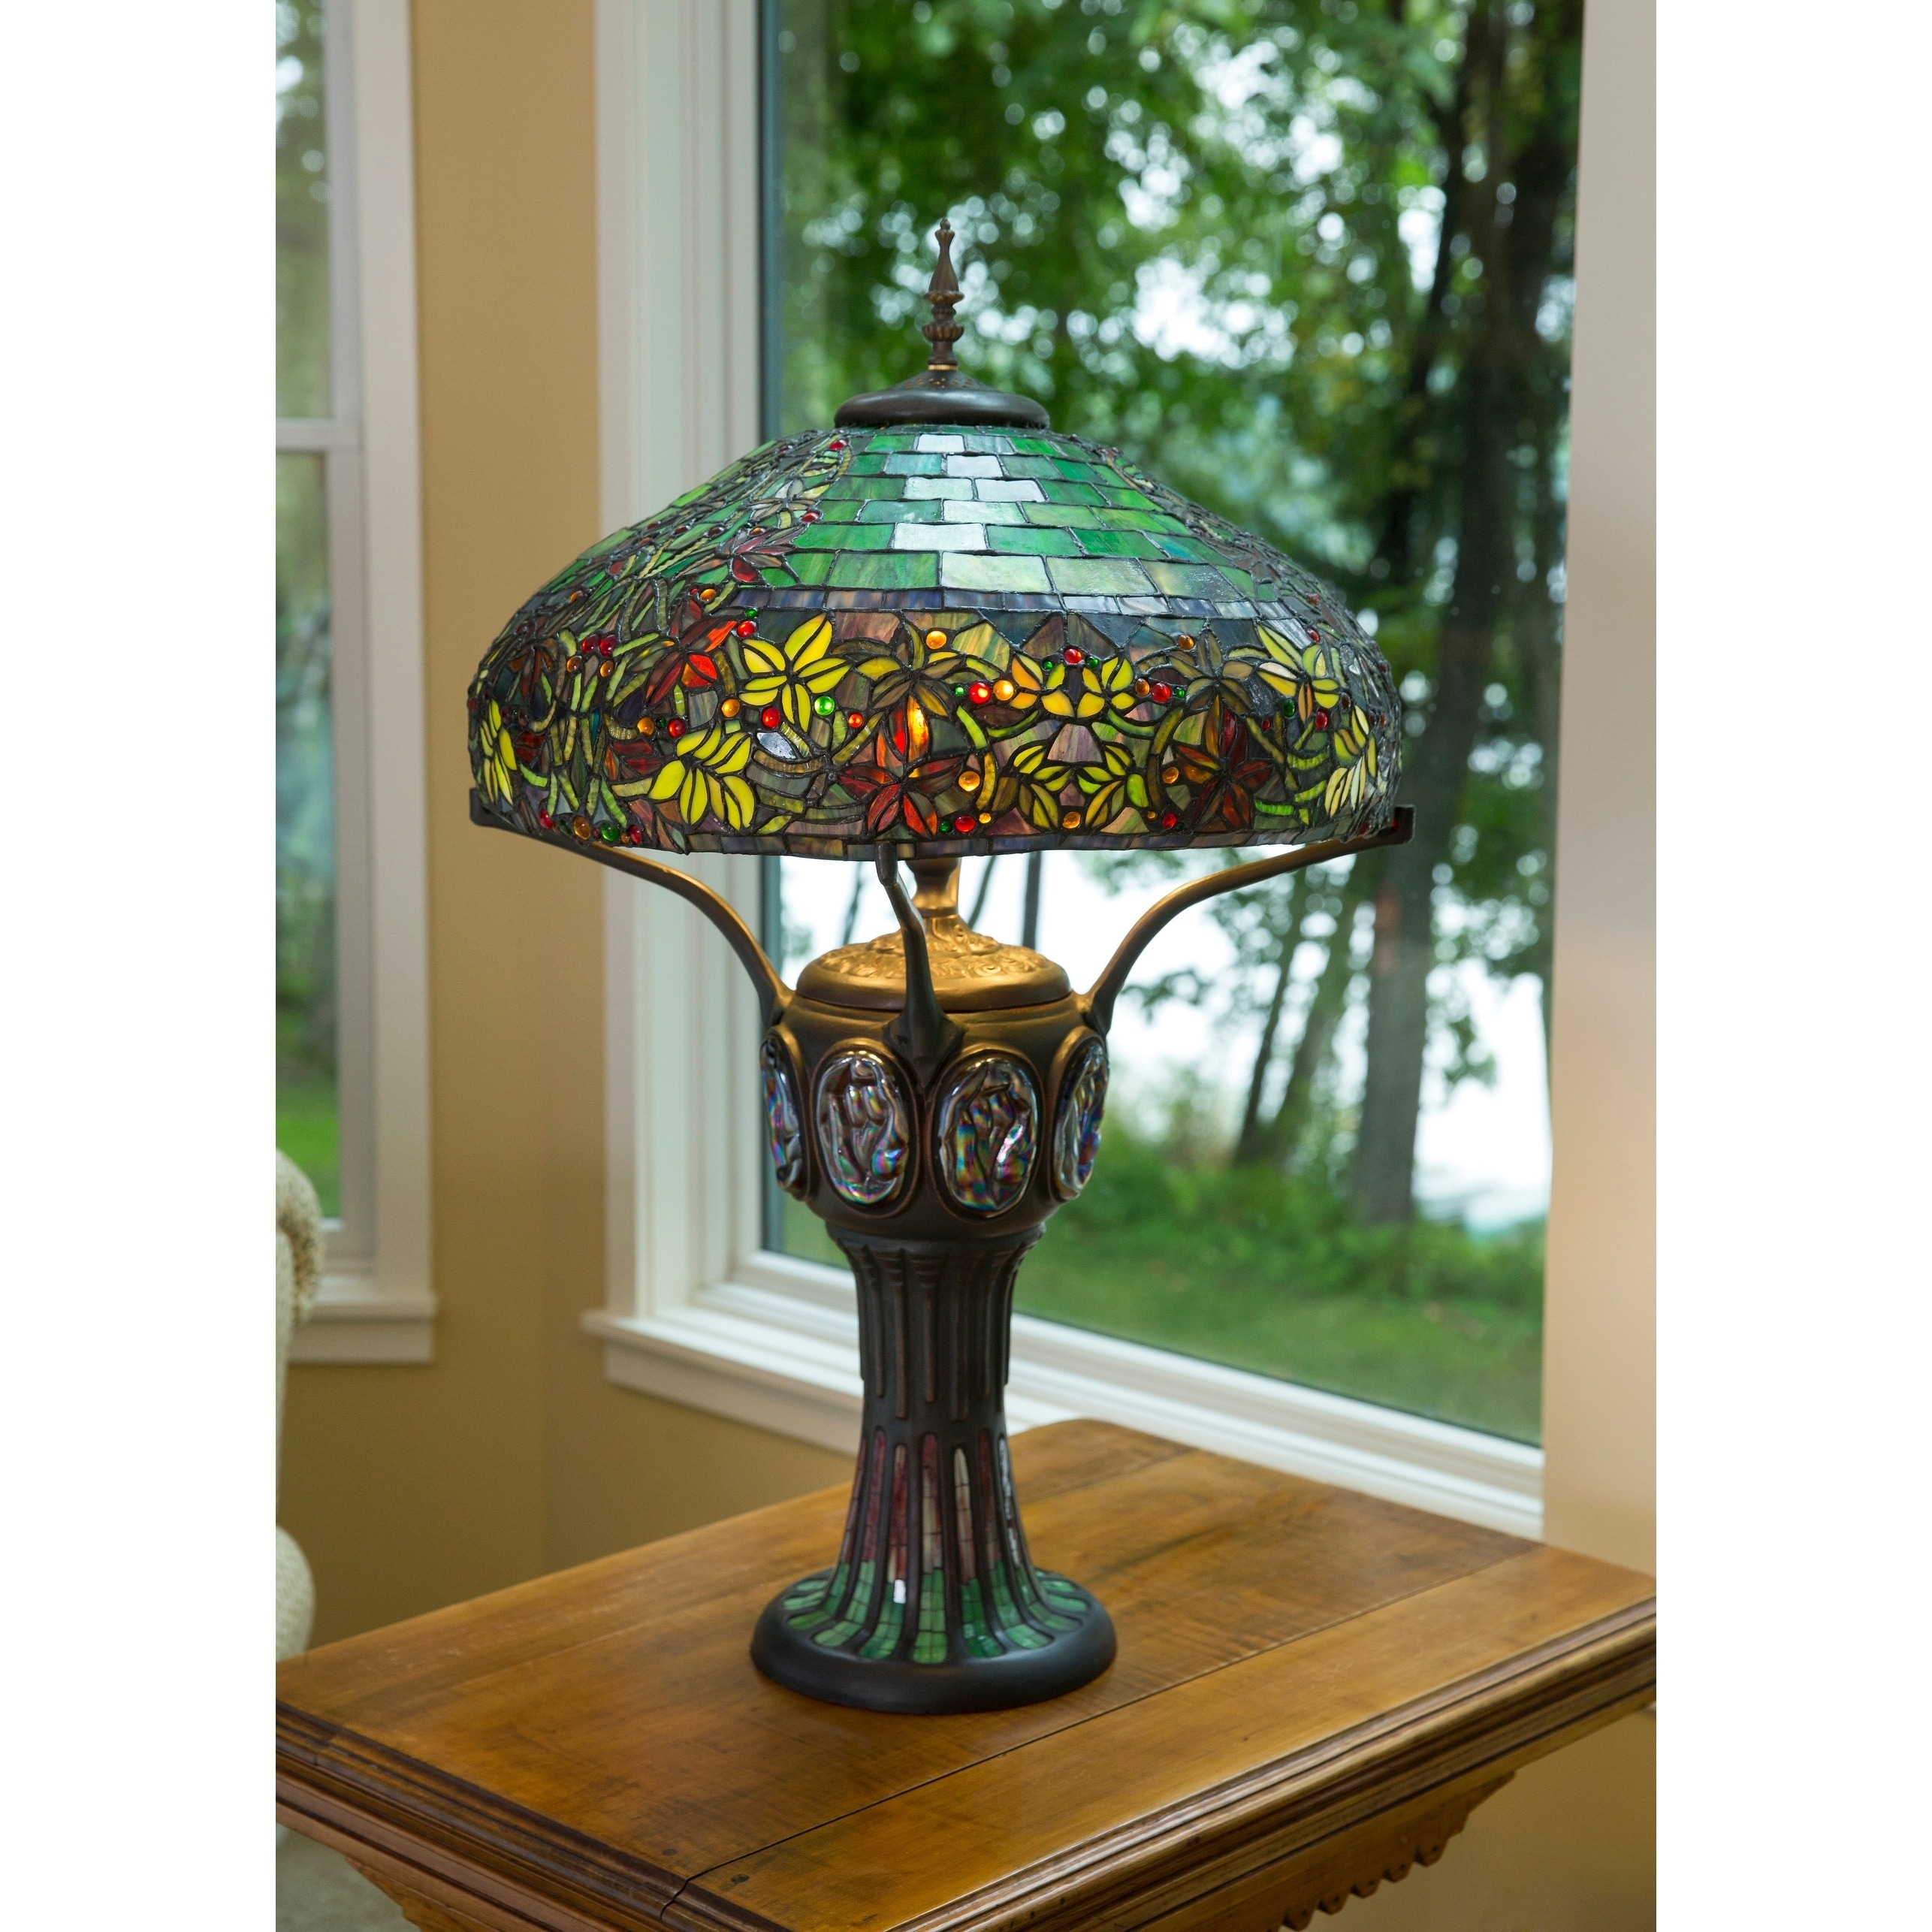 Gracewood Hollow Rezzoug Multicolored Stained Gl 34 Inch High Table Lamp With Turtleback And Mosaic